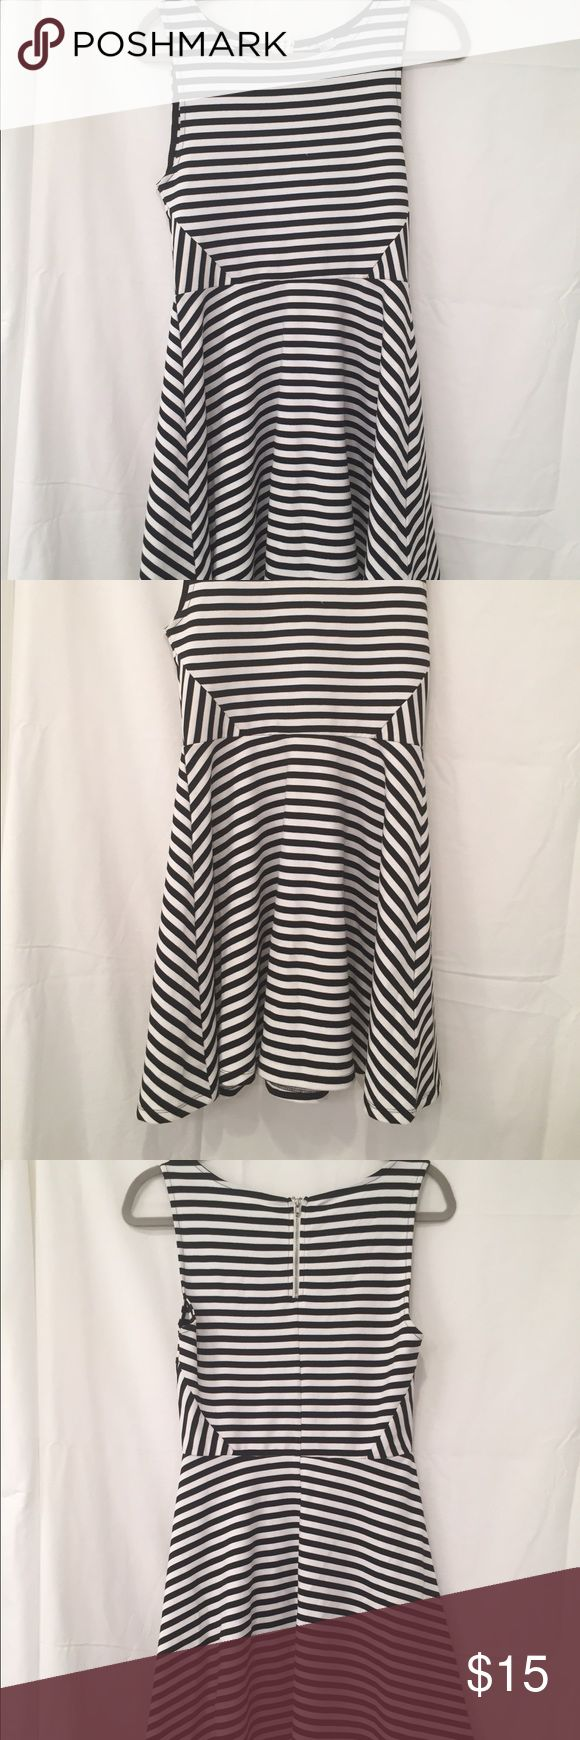 Striped Tank Dress Tank dress very flattering because of varying stripes on the side Dresses Mini